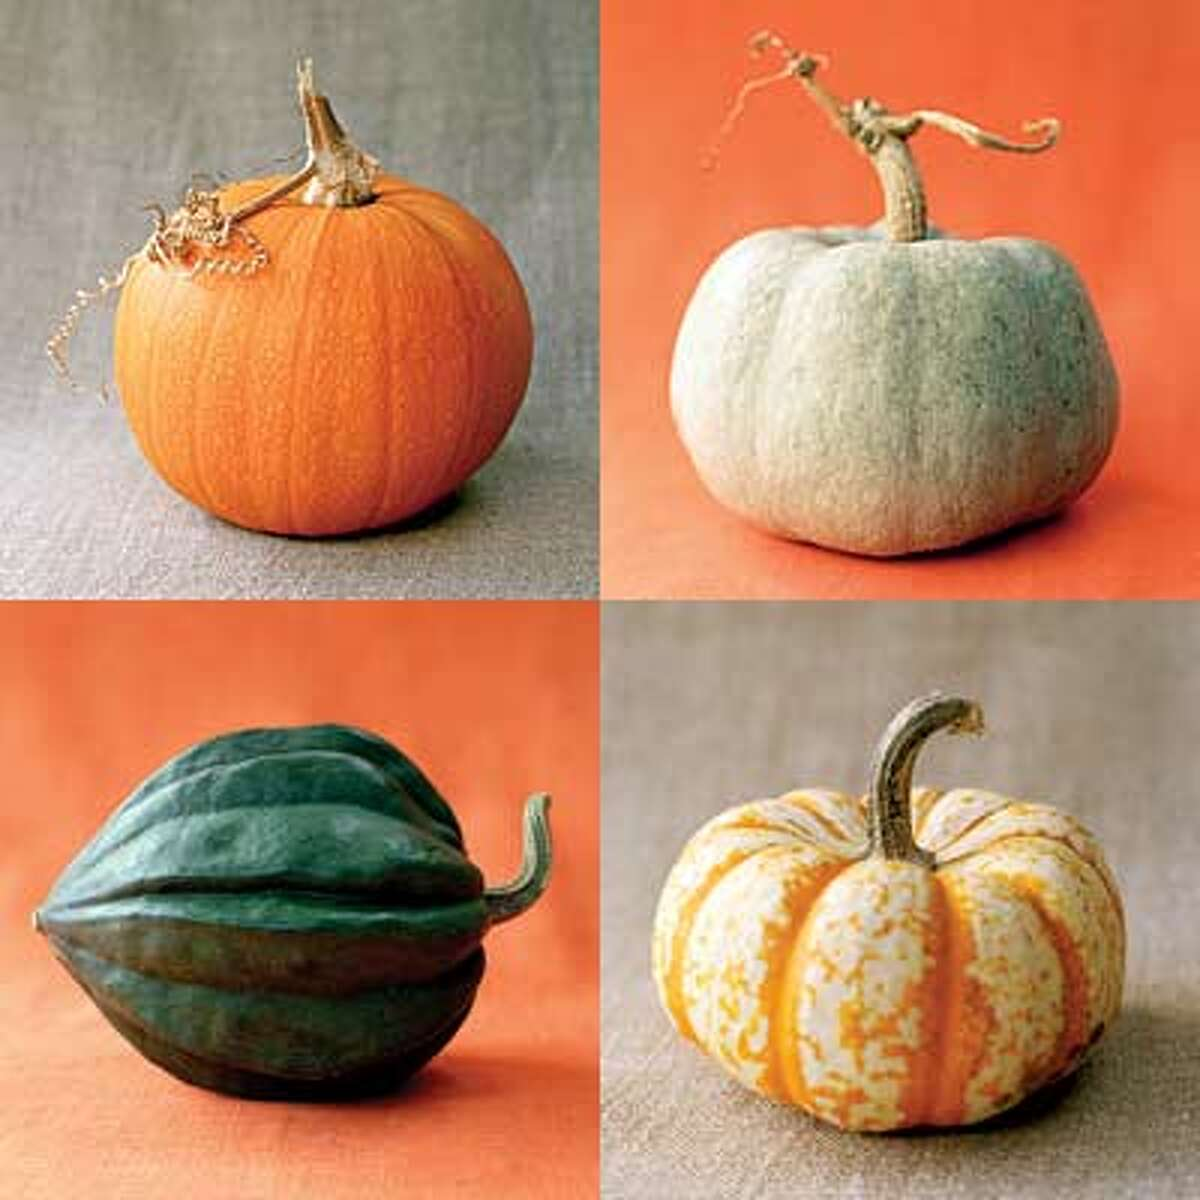 A pumpkin can come in many different colors, and is actually a fruit, not a vegetable. Source: Yahoo.com.